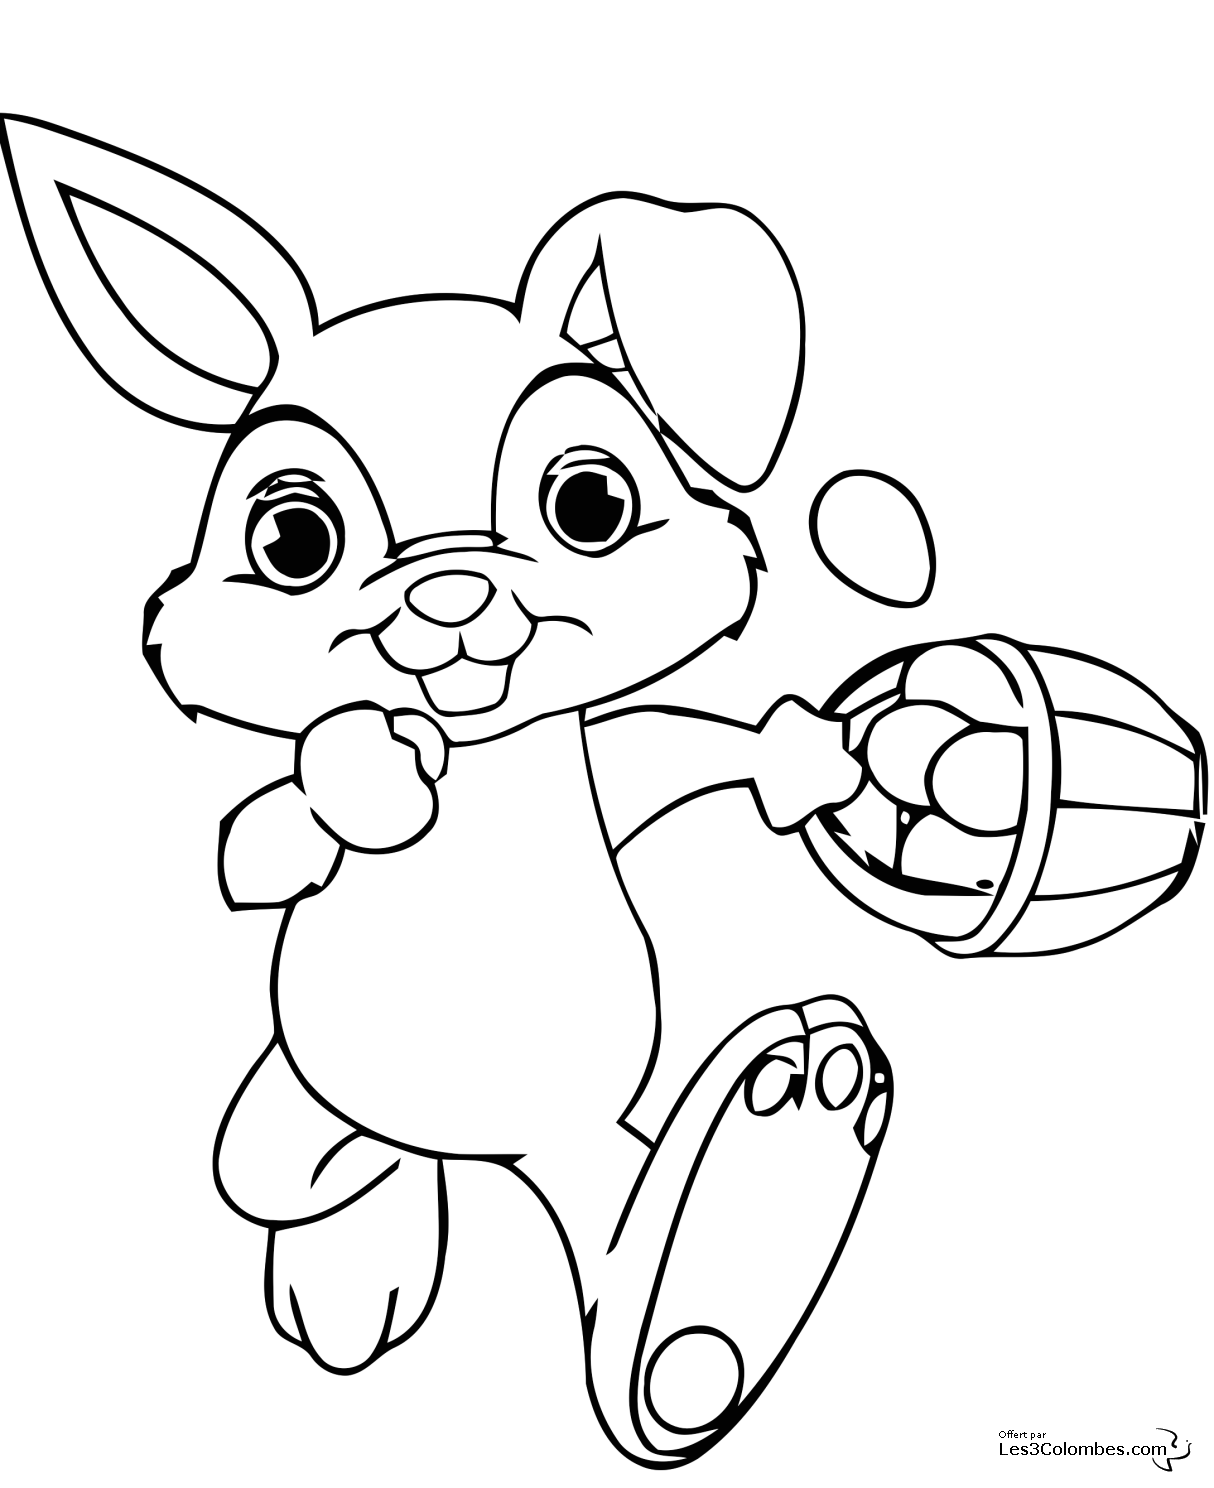 coloriage lapin de paques a imprimer gratuit. Black Bedroom Furniture Sets. Home Design Ideas